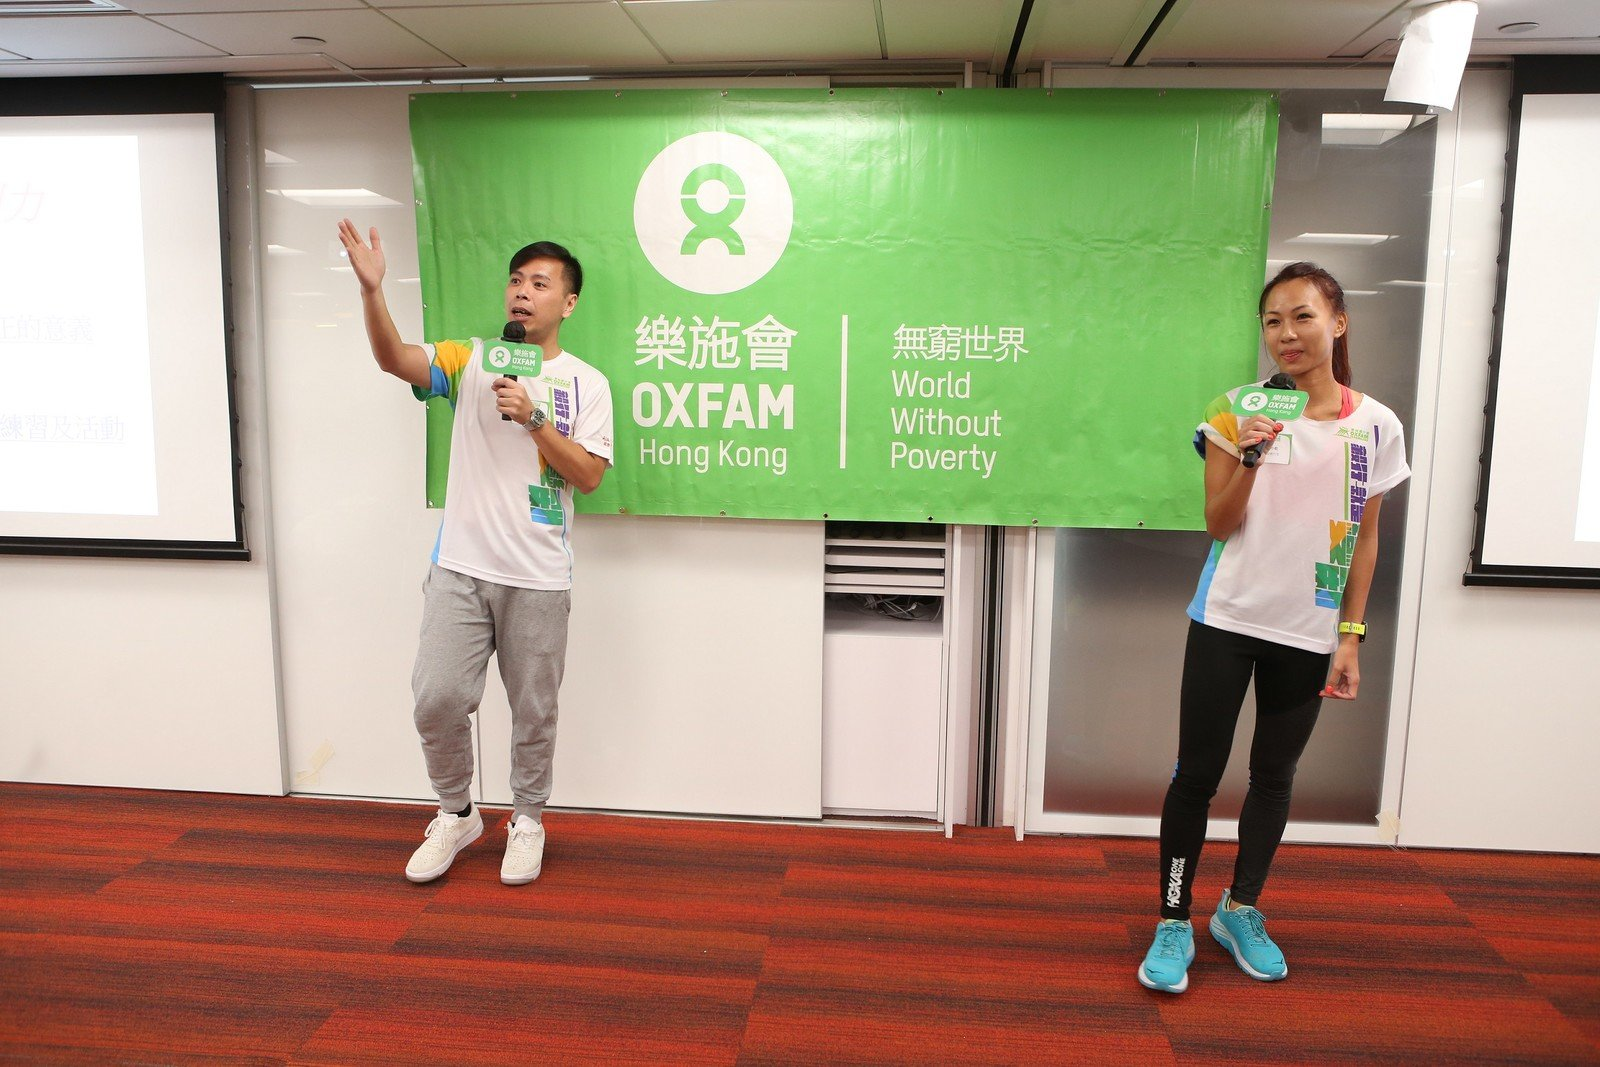 Frankie Tong and Samantha Chan, experienced Super Trailwalkers, sharing their trailwalking tips and experience with walkers and support teams, and shared how they could relate to this year's theme 'Oxfam Trailwalker: Transforming Lives'.